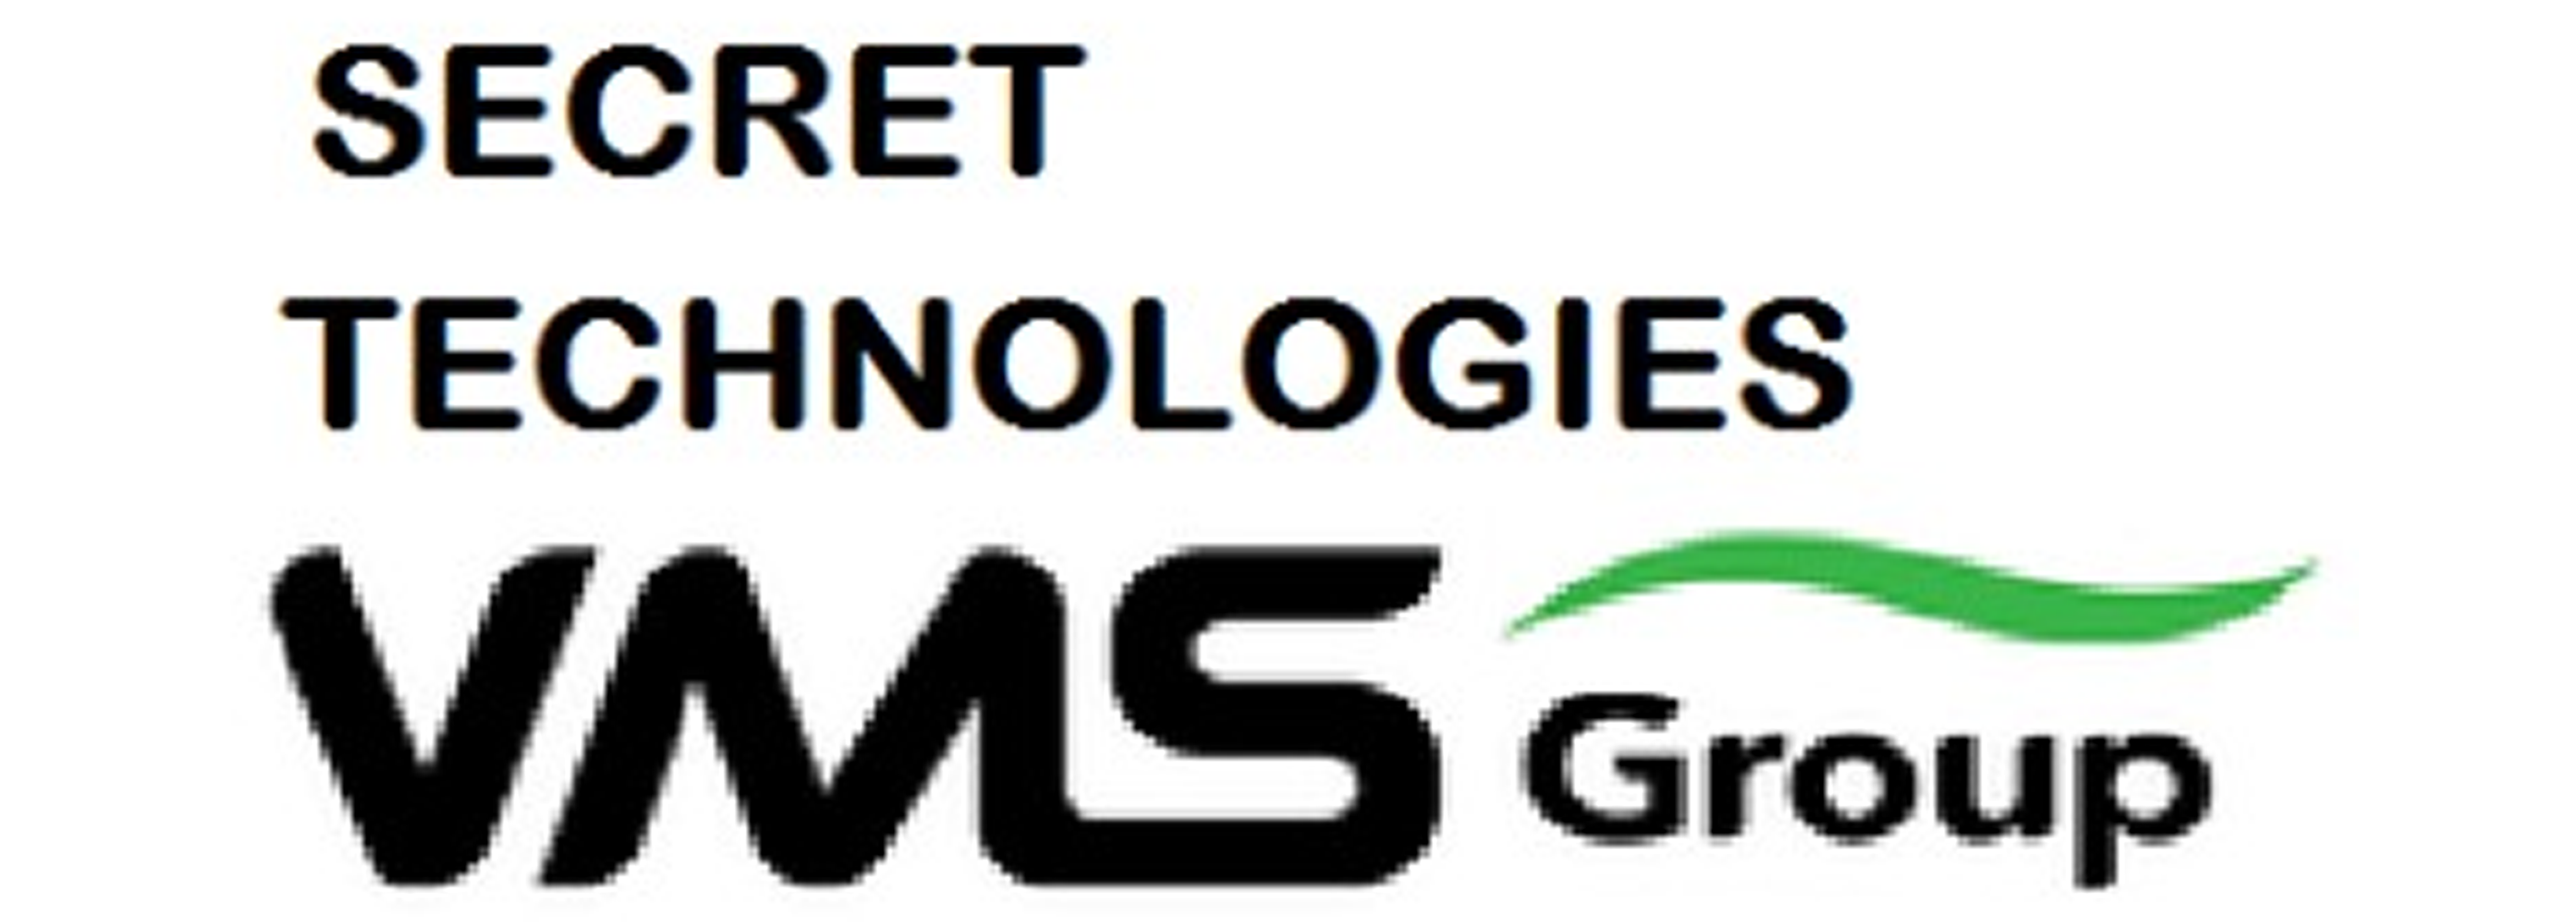 https://www.ampleindia.in/company/secret-technologies-india-vms-group